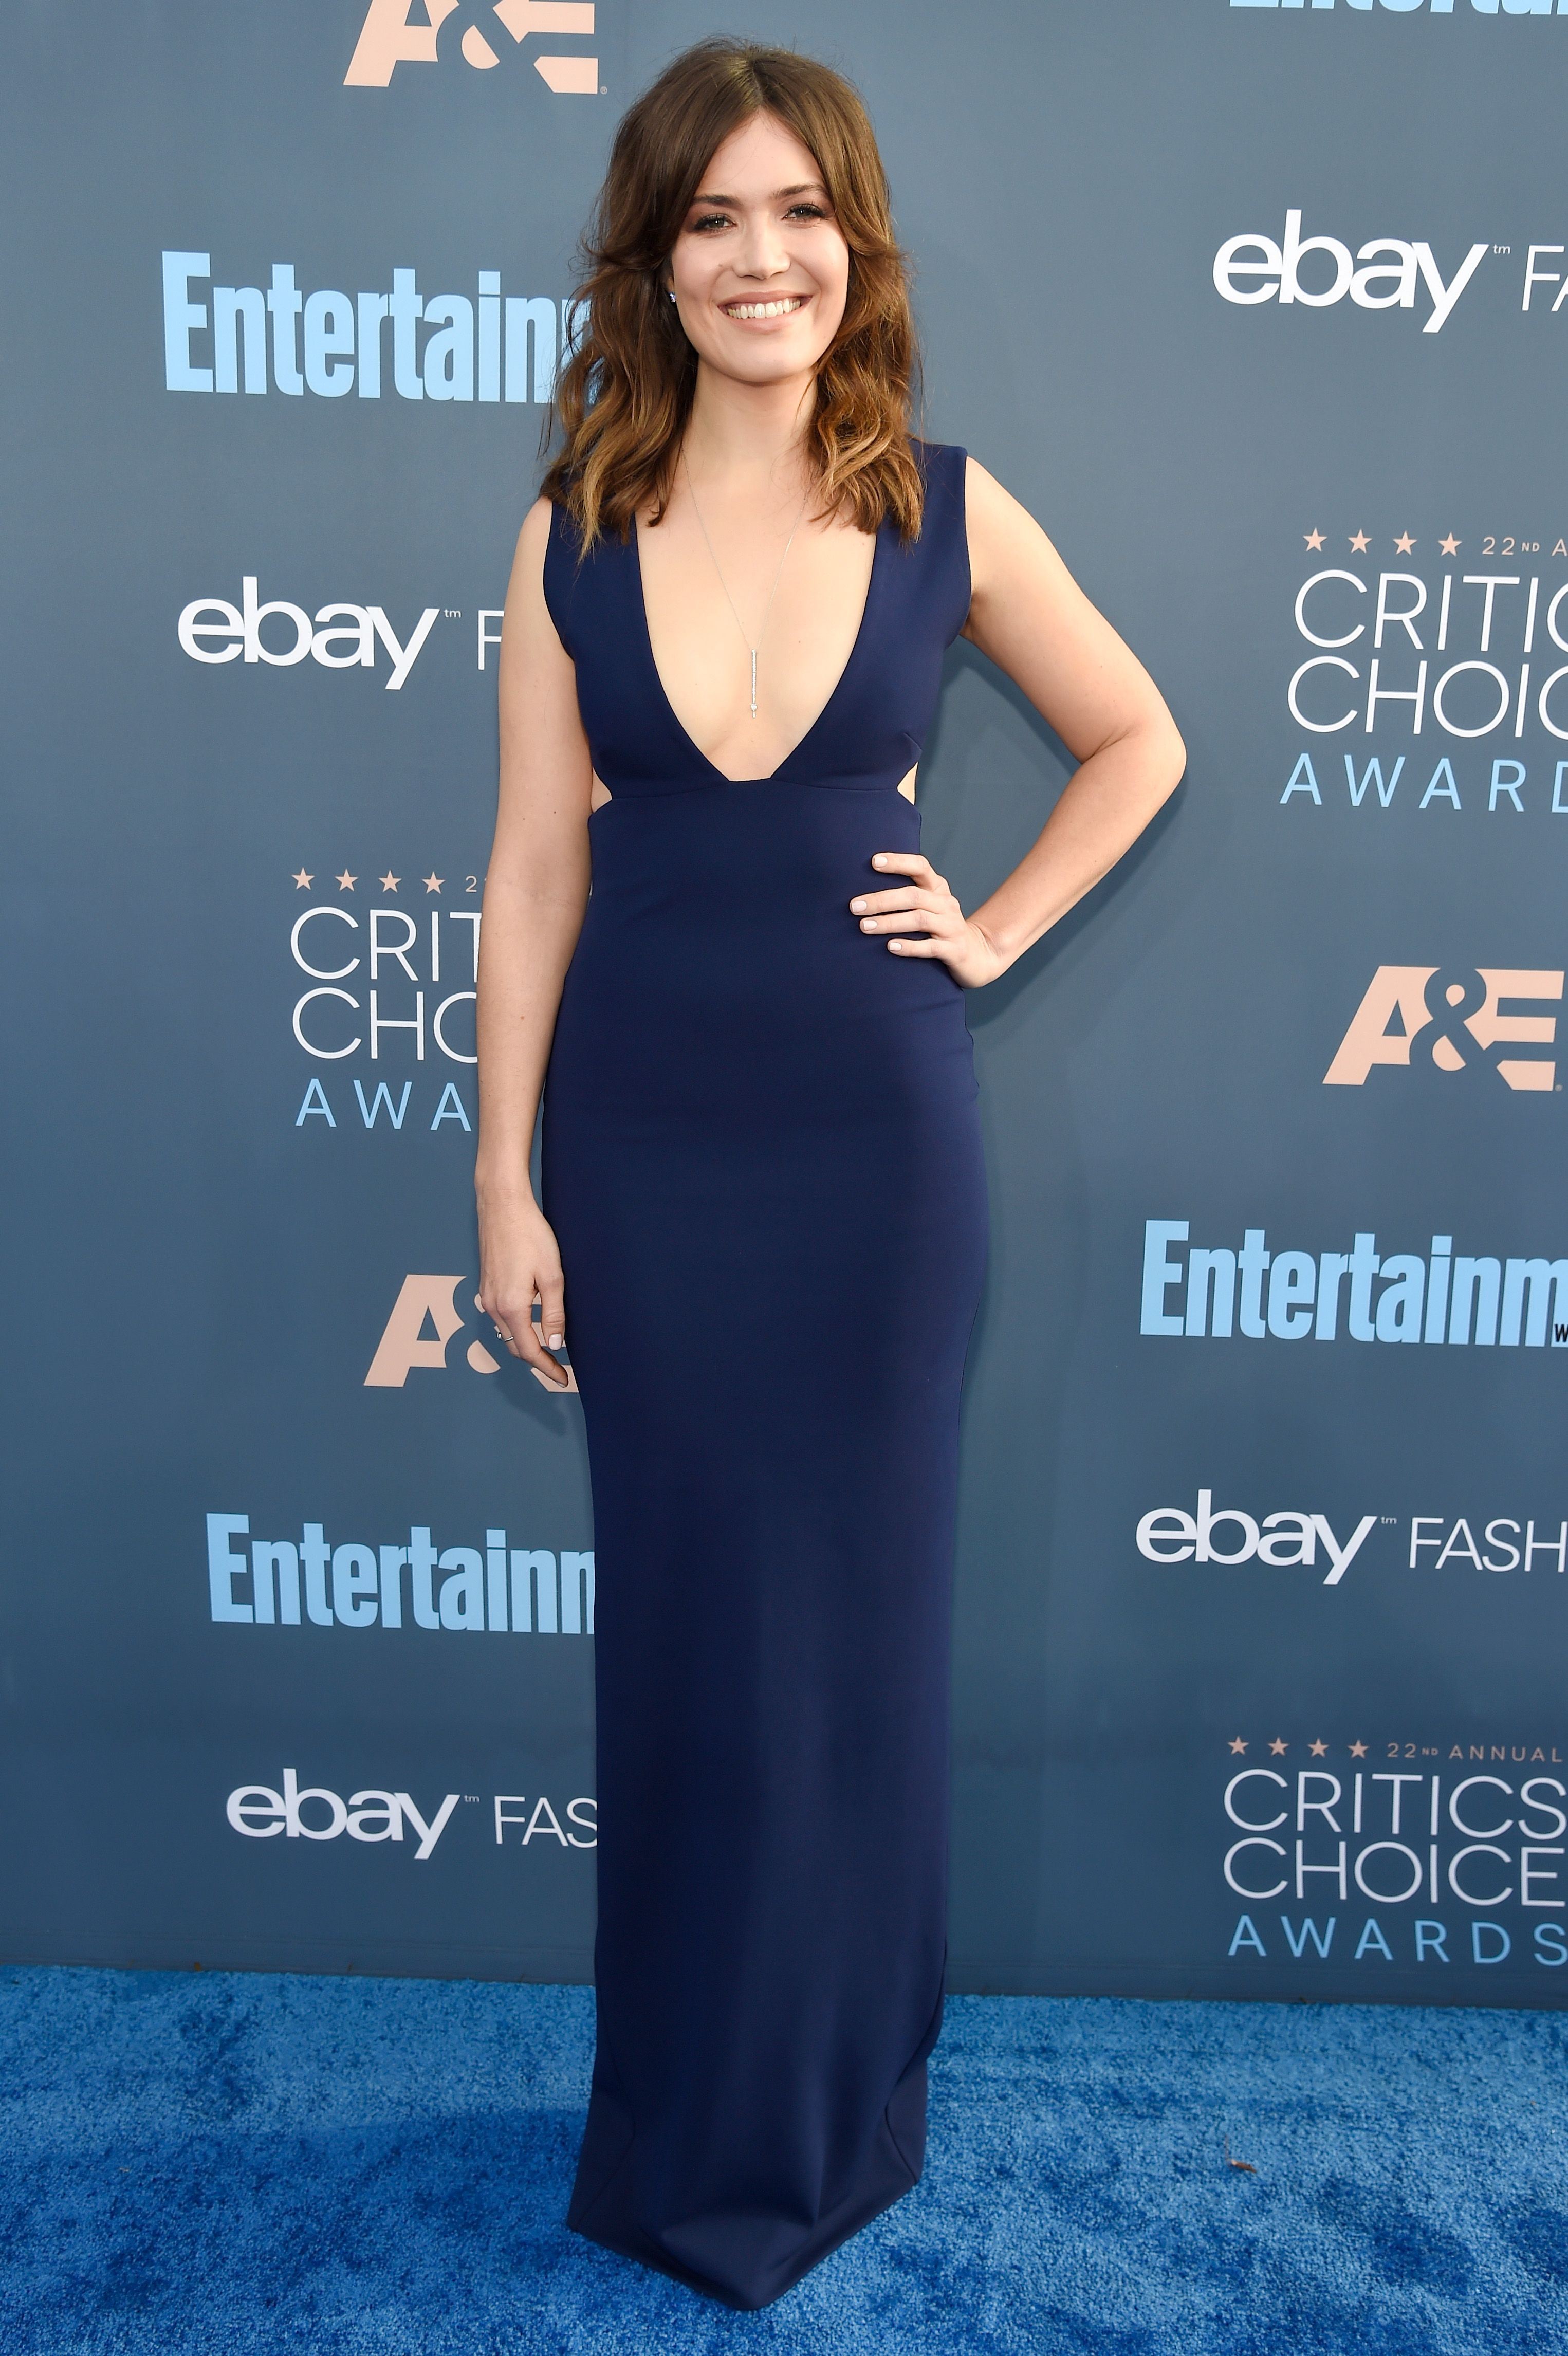 Critics Choice Awards >> Best Red Carpet Looks At Critics Choice Awards 2017 Celebrity